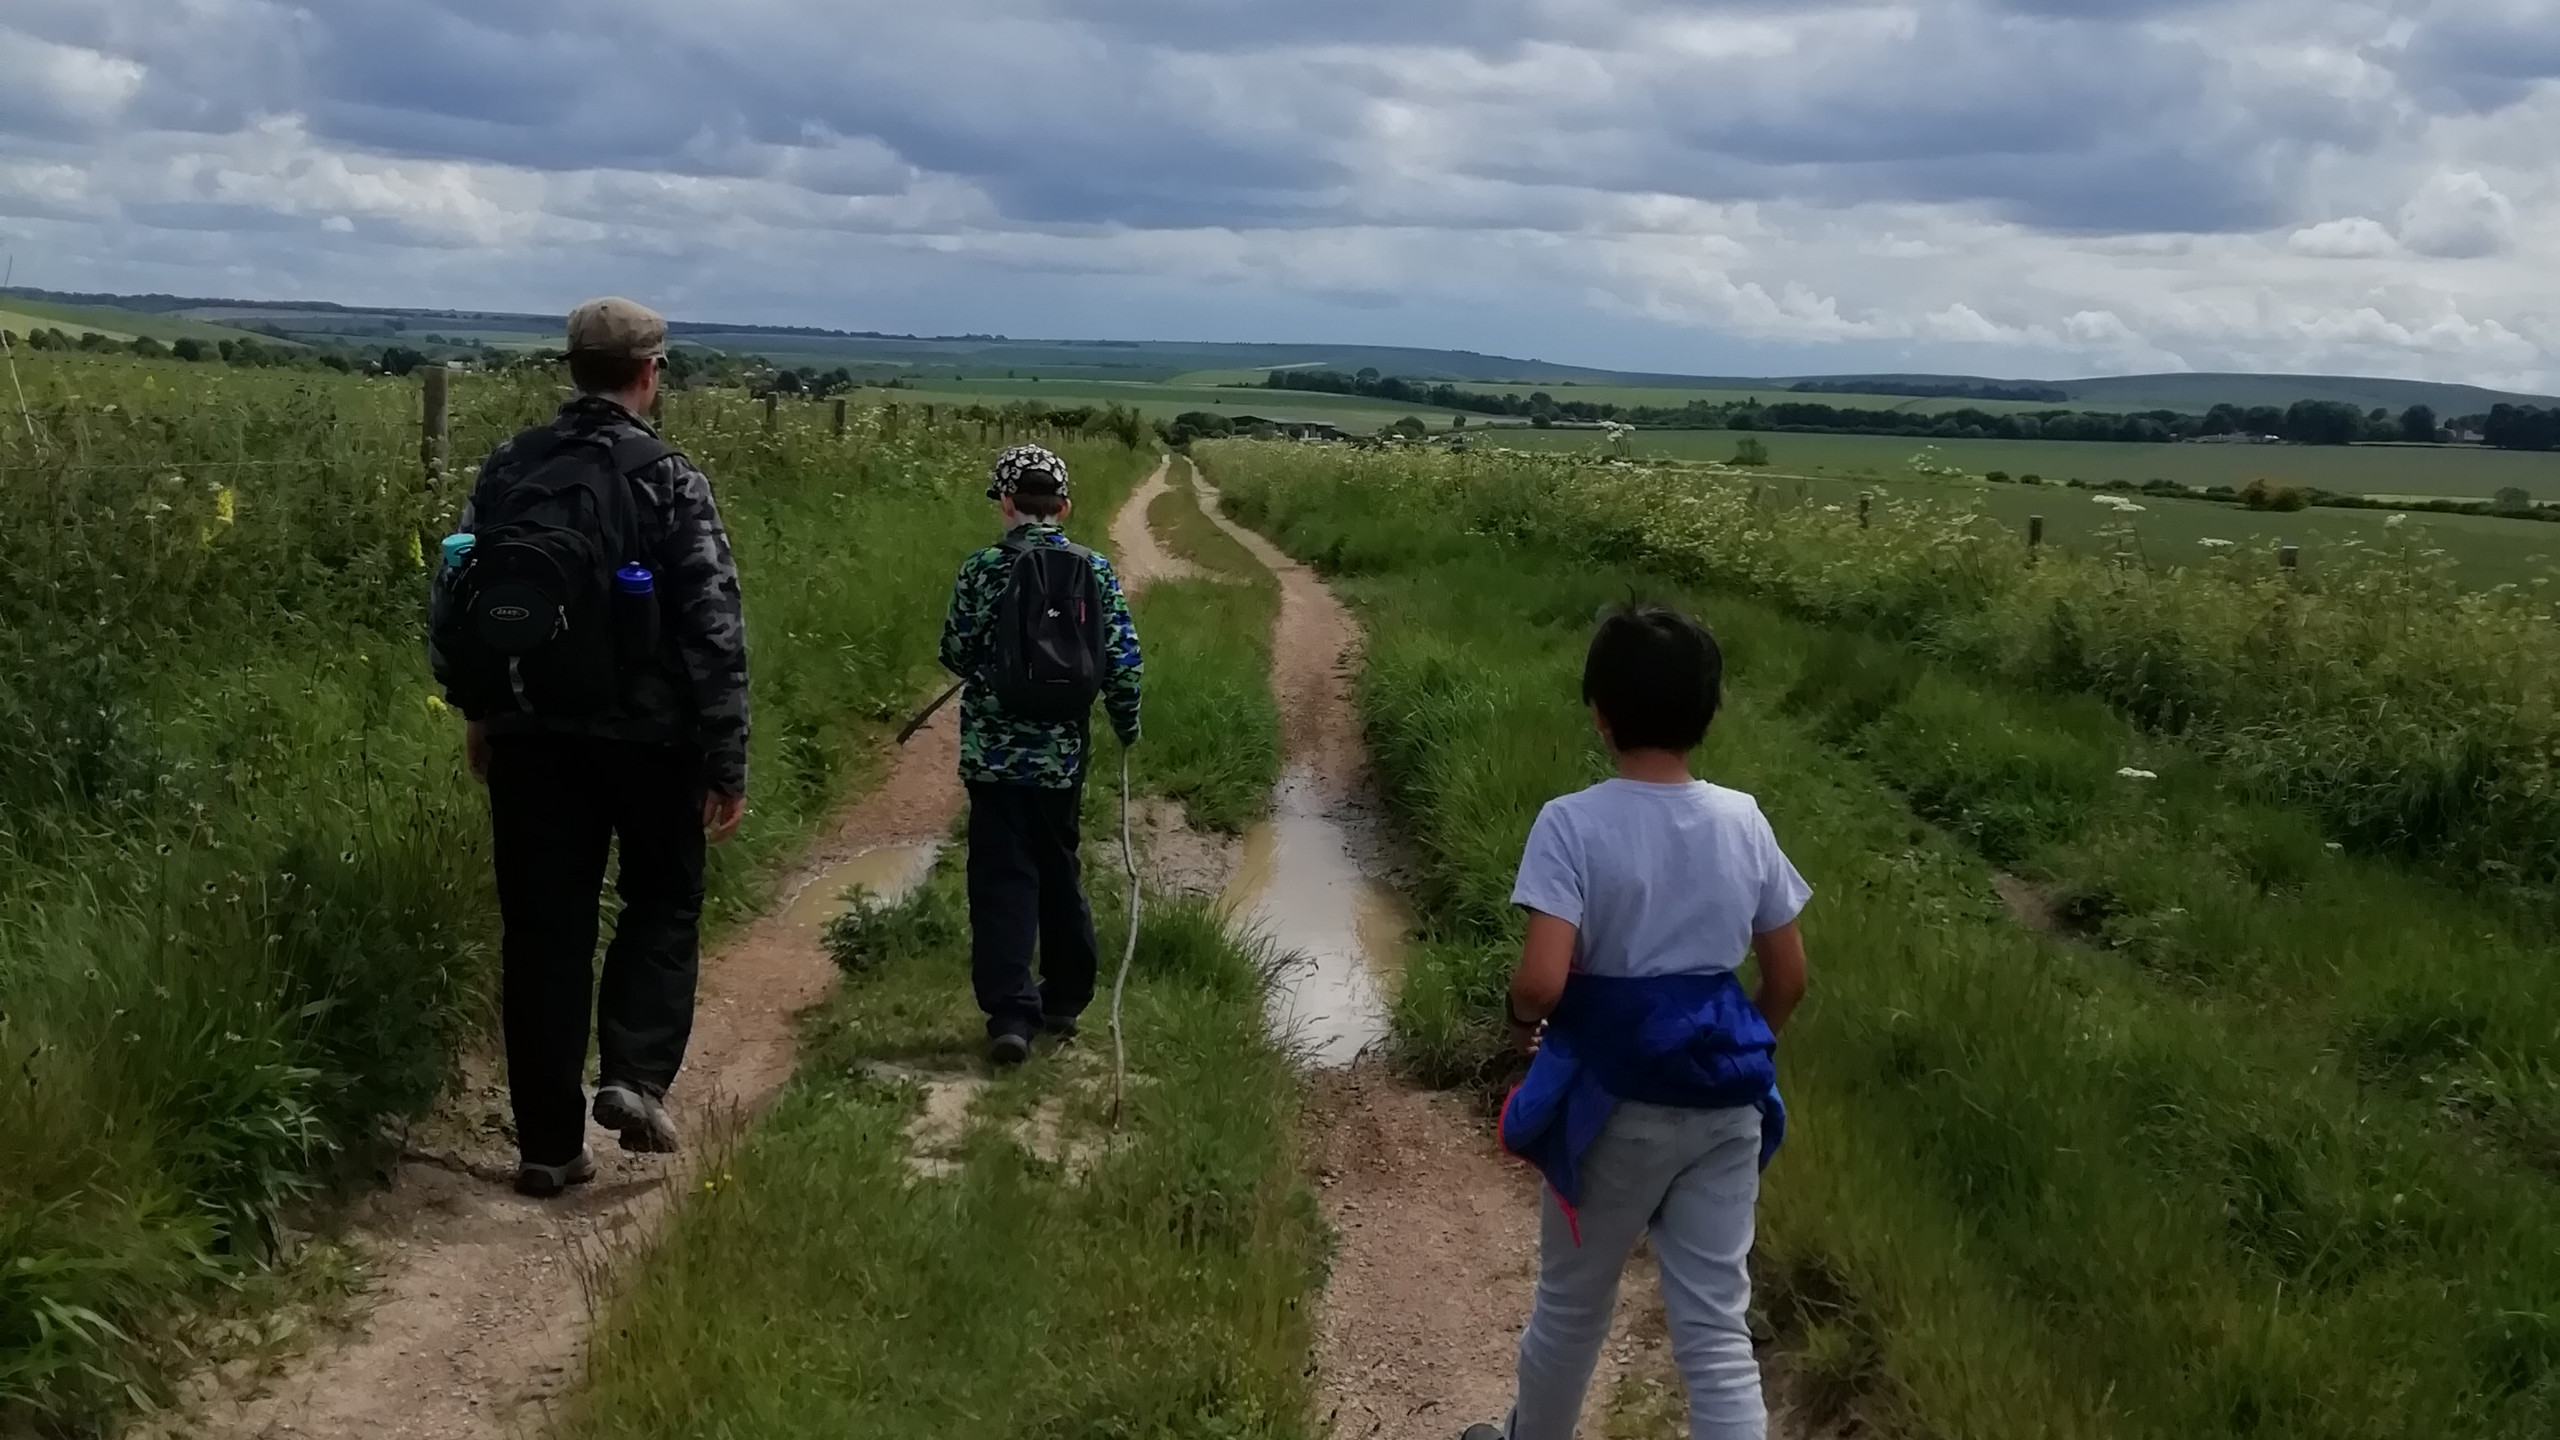 Hiking back to Avebury from Windmill Hill